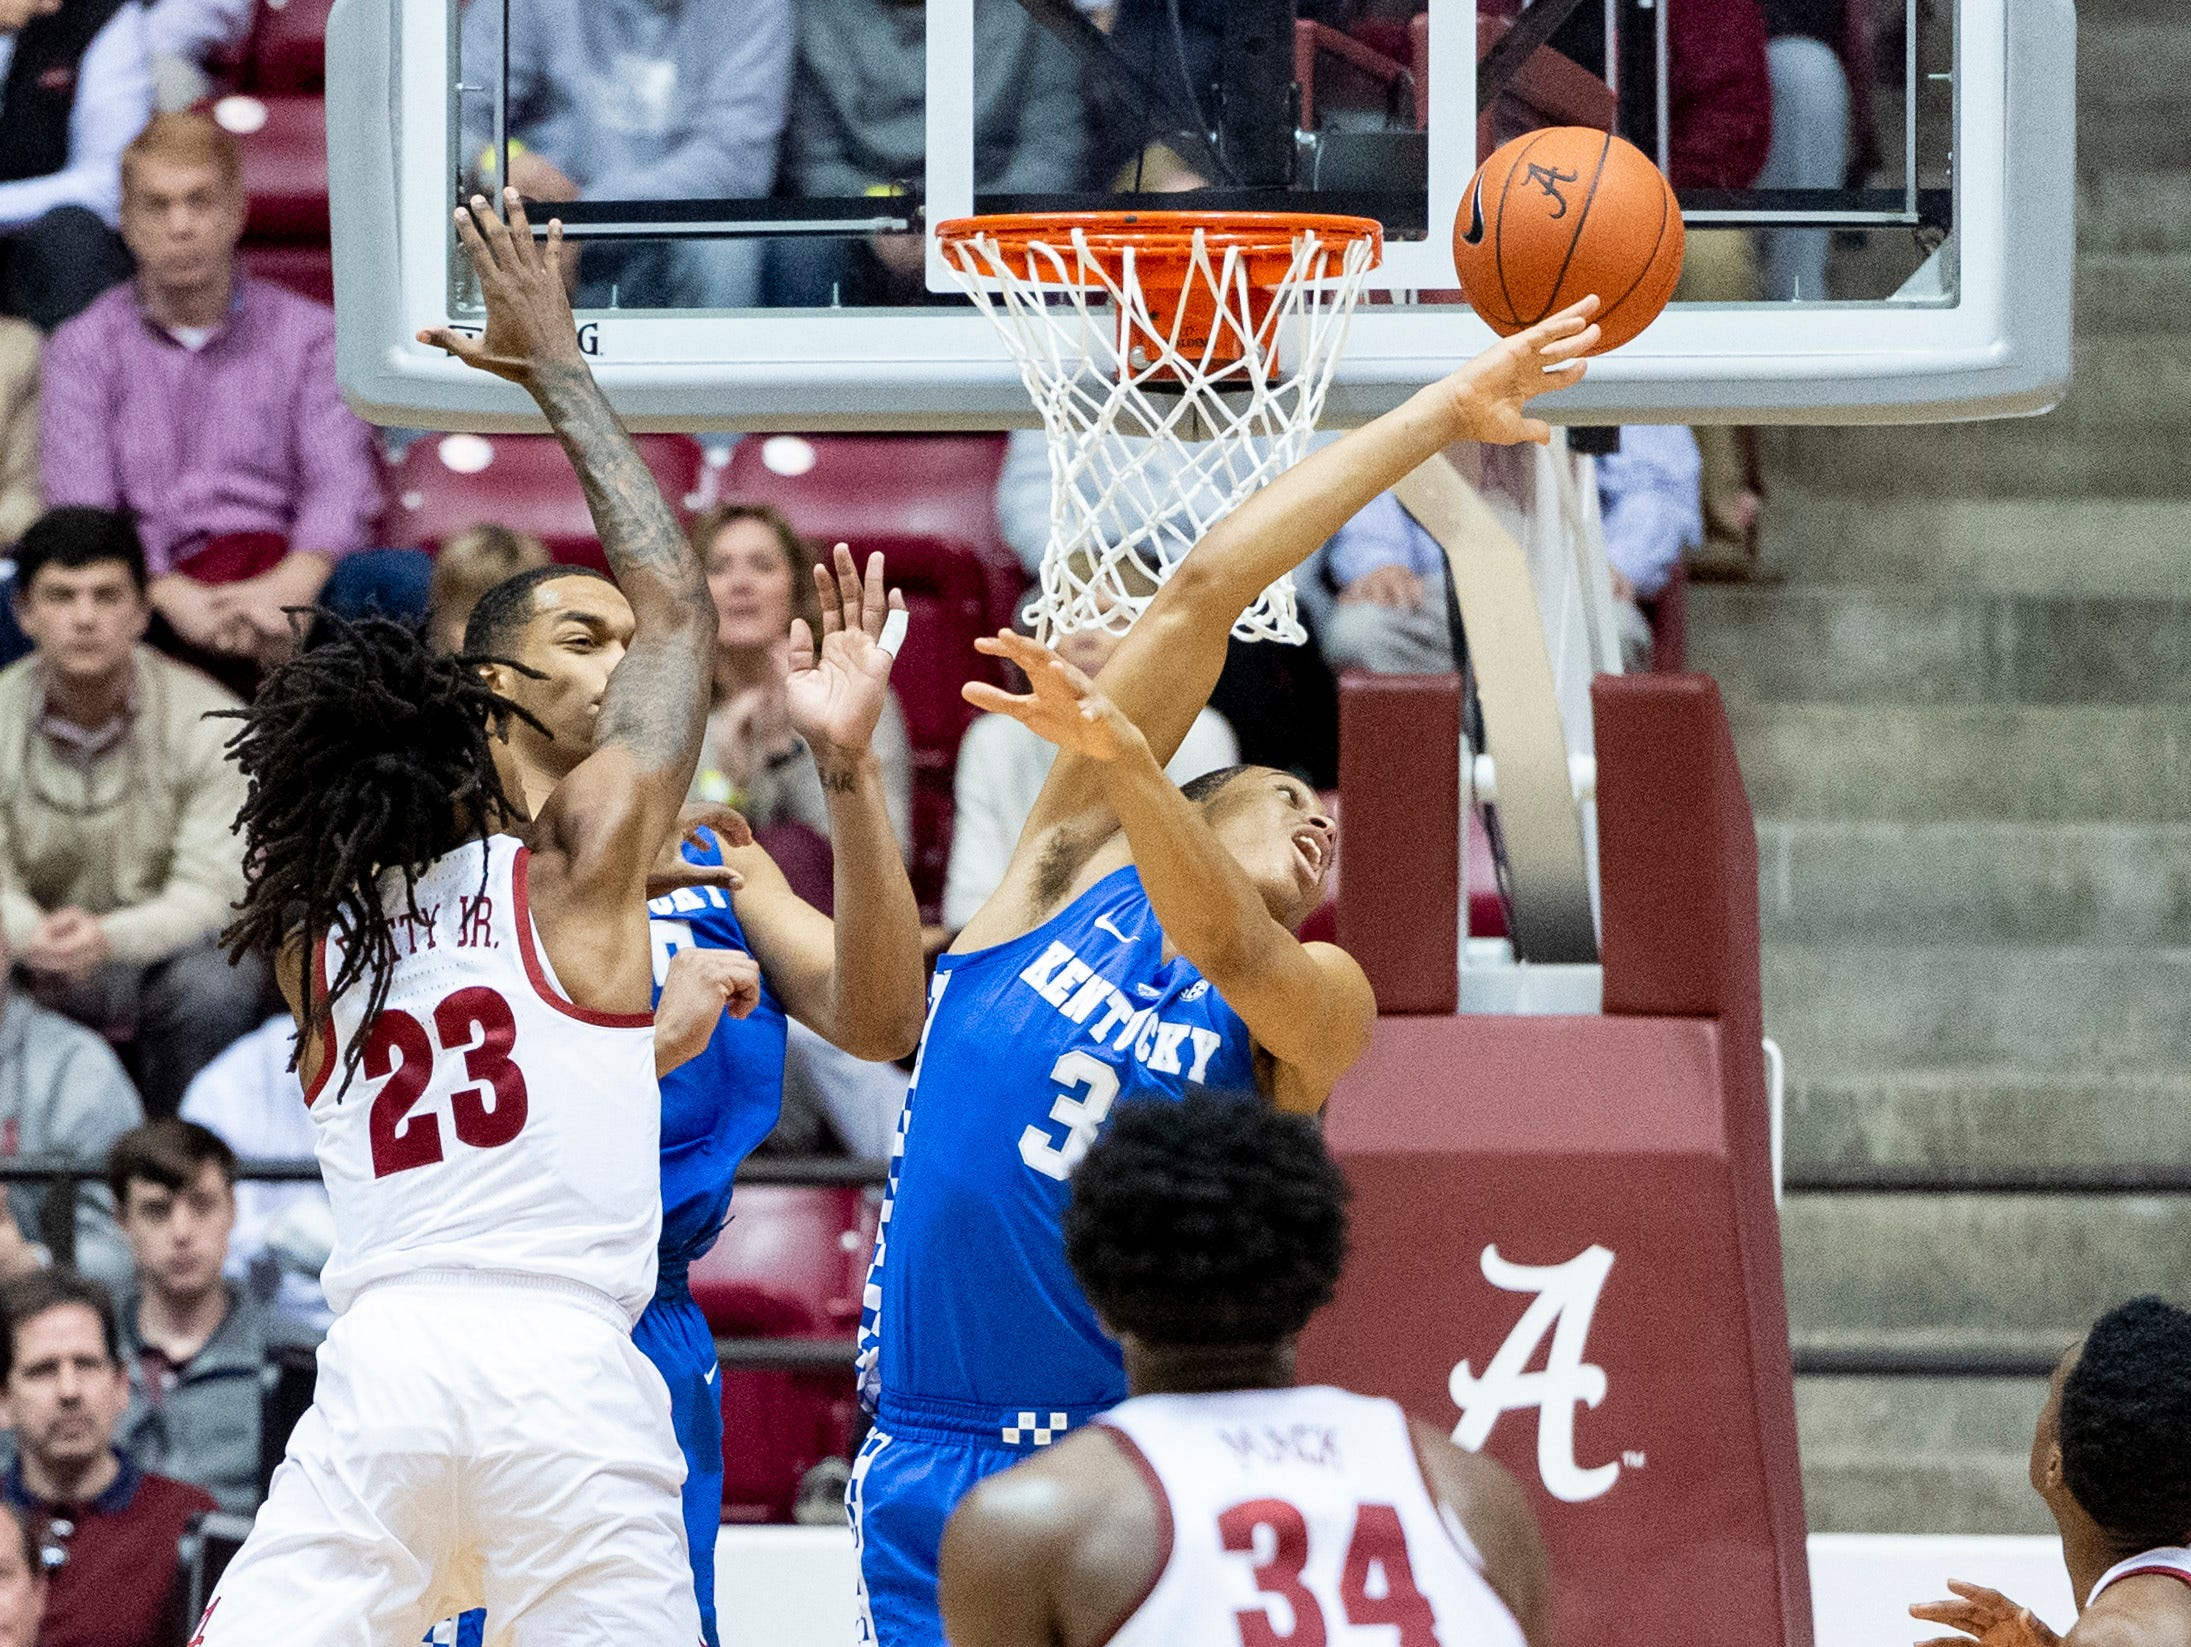 Kentucky guard Keldon Johnson (3) swats away a rebound from Alabama guard John Petty (23) during the first half of an NCAA college basketball game, Saturday, Jan. 5, 2019, in Tuscaloosa, Ala.